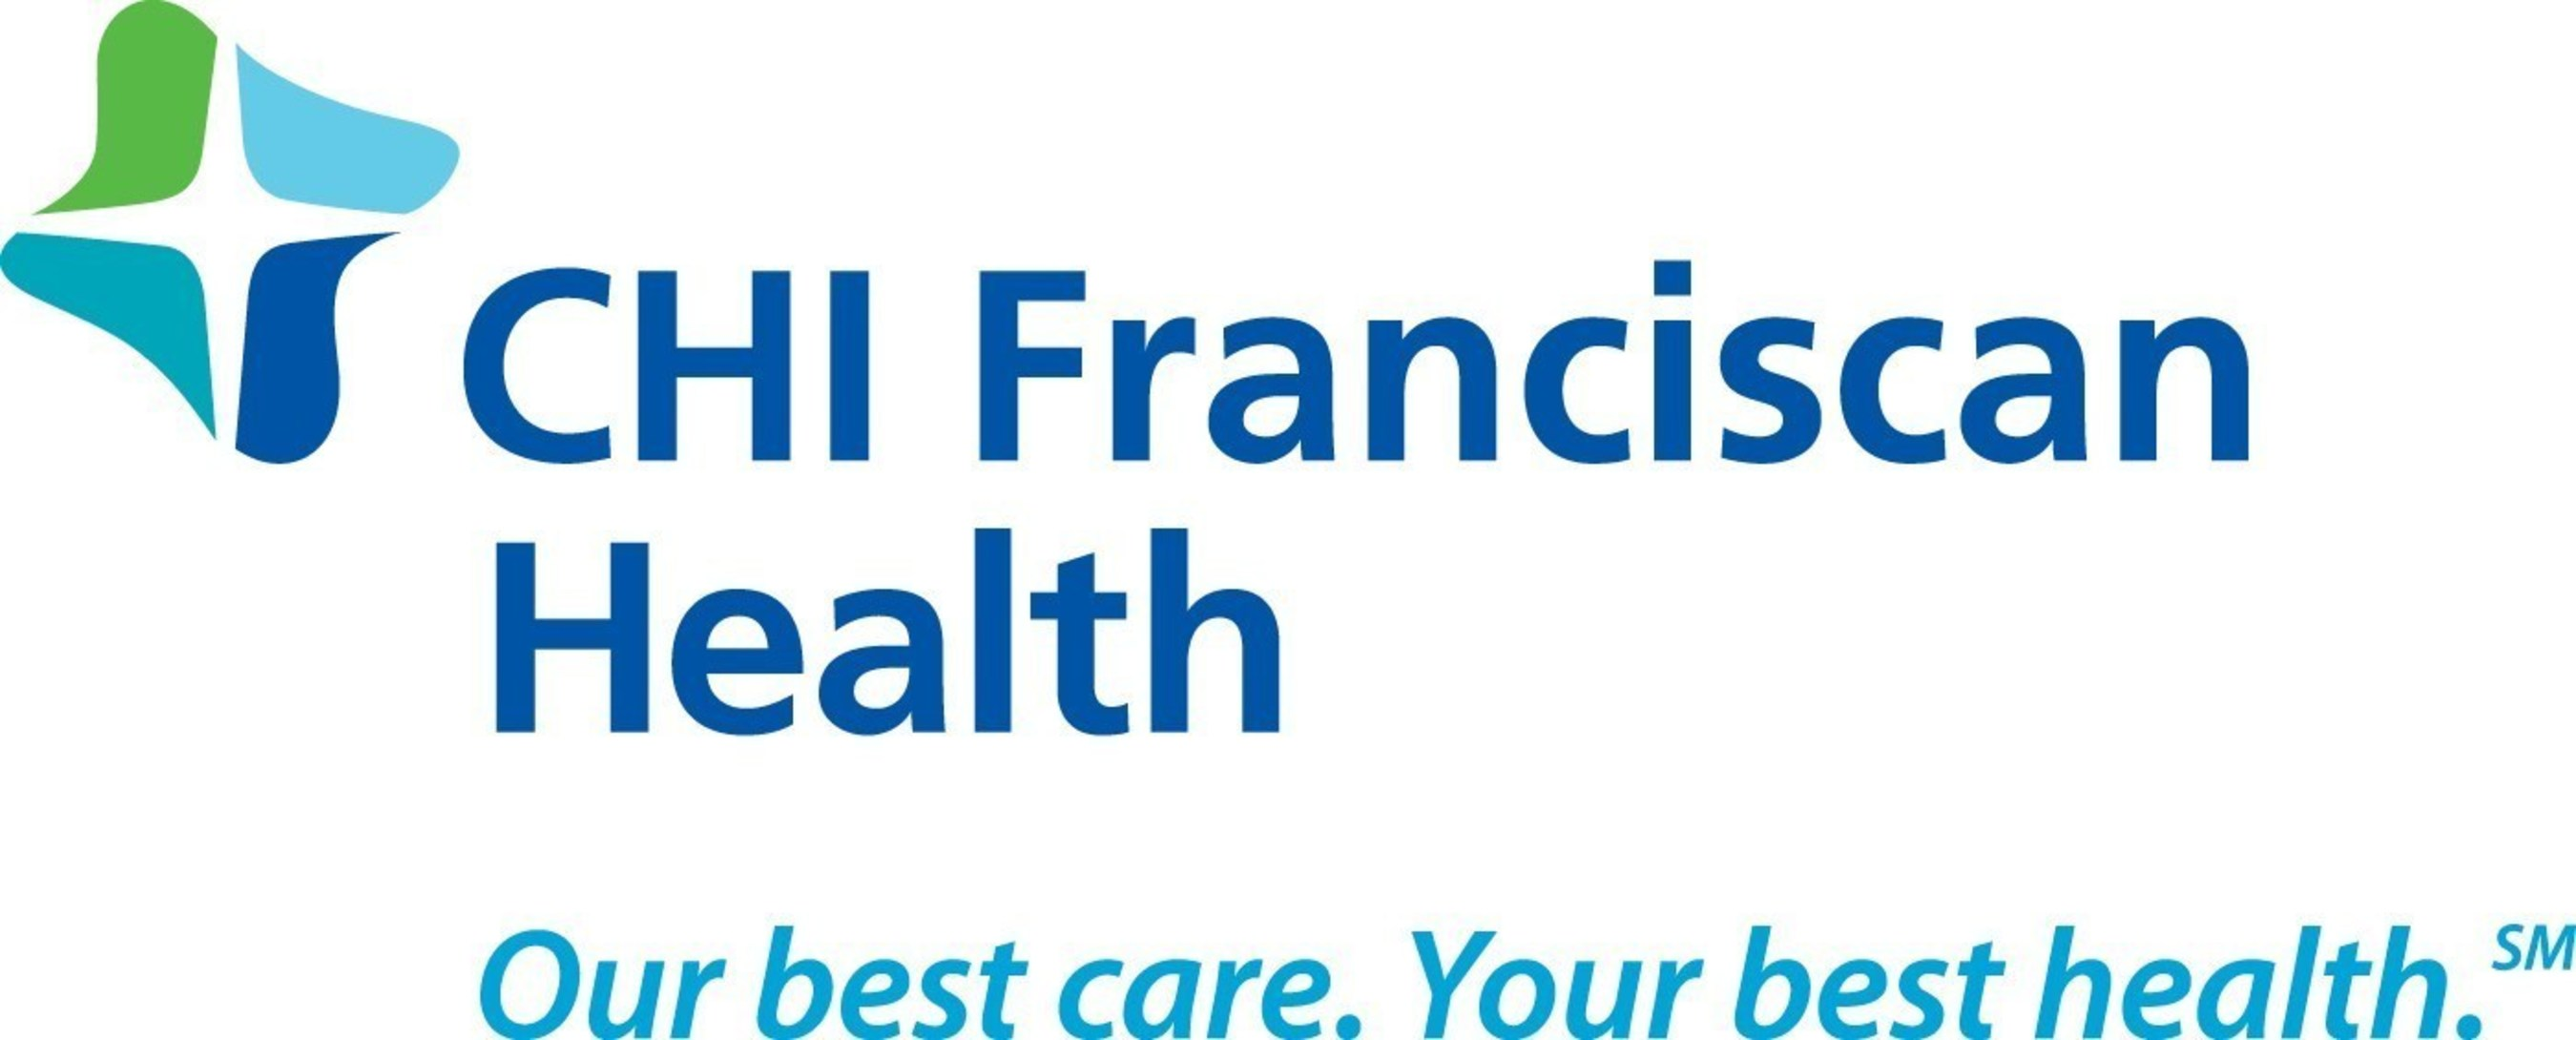 CHI Franciscan Health to invest over half a billion dollars into health care  infrastructure in Kitsap County